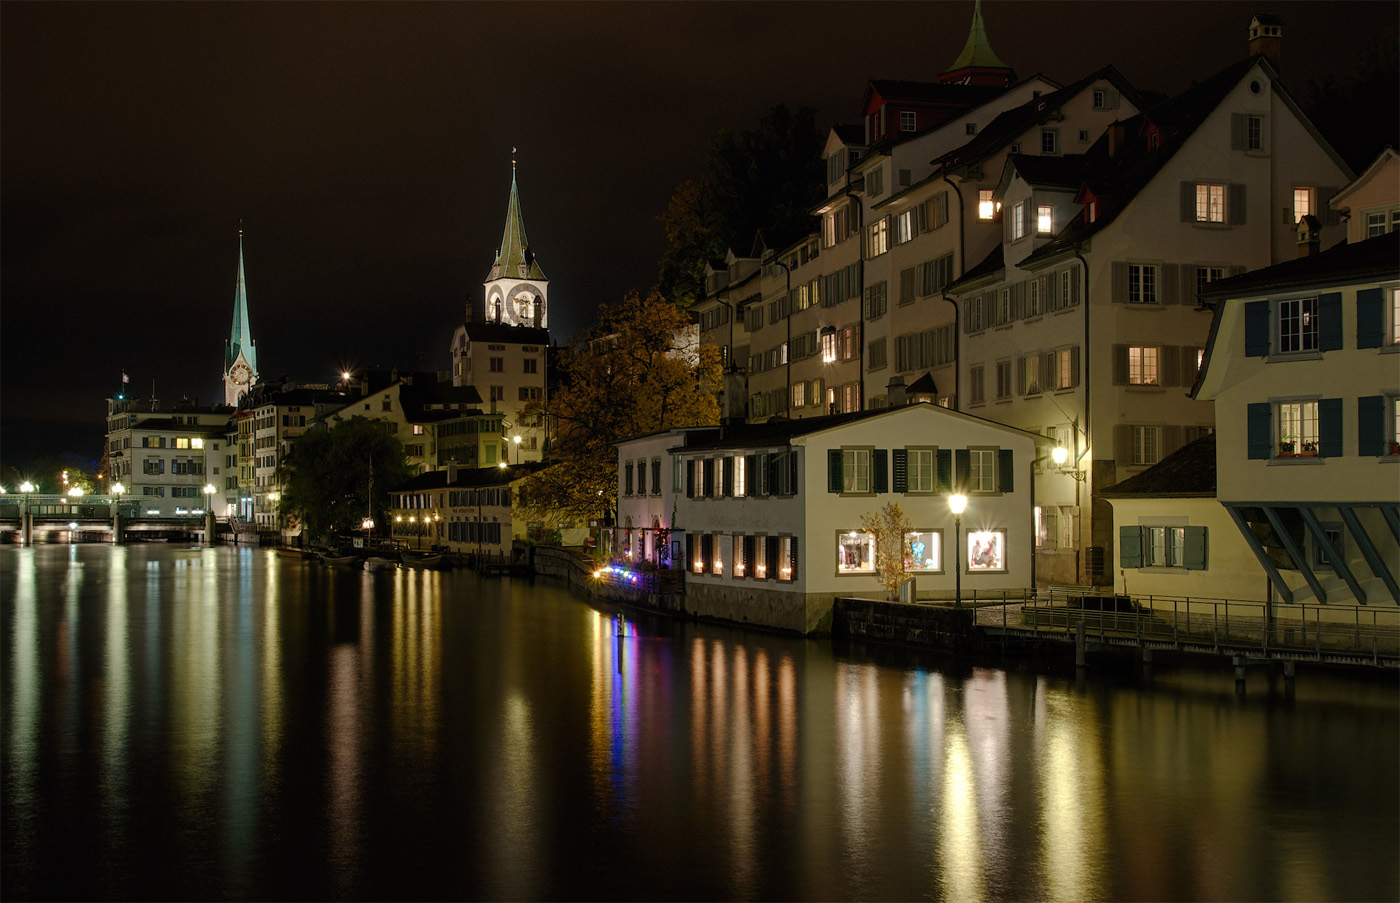 Zürich by night - Schipfe